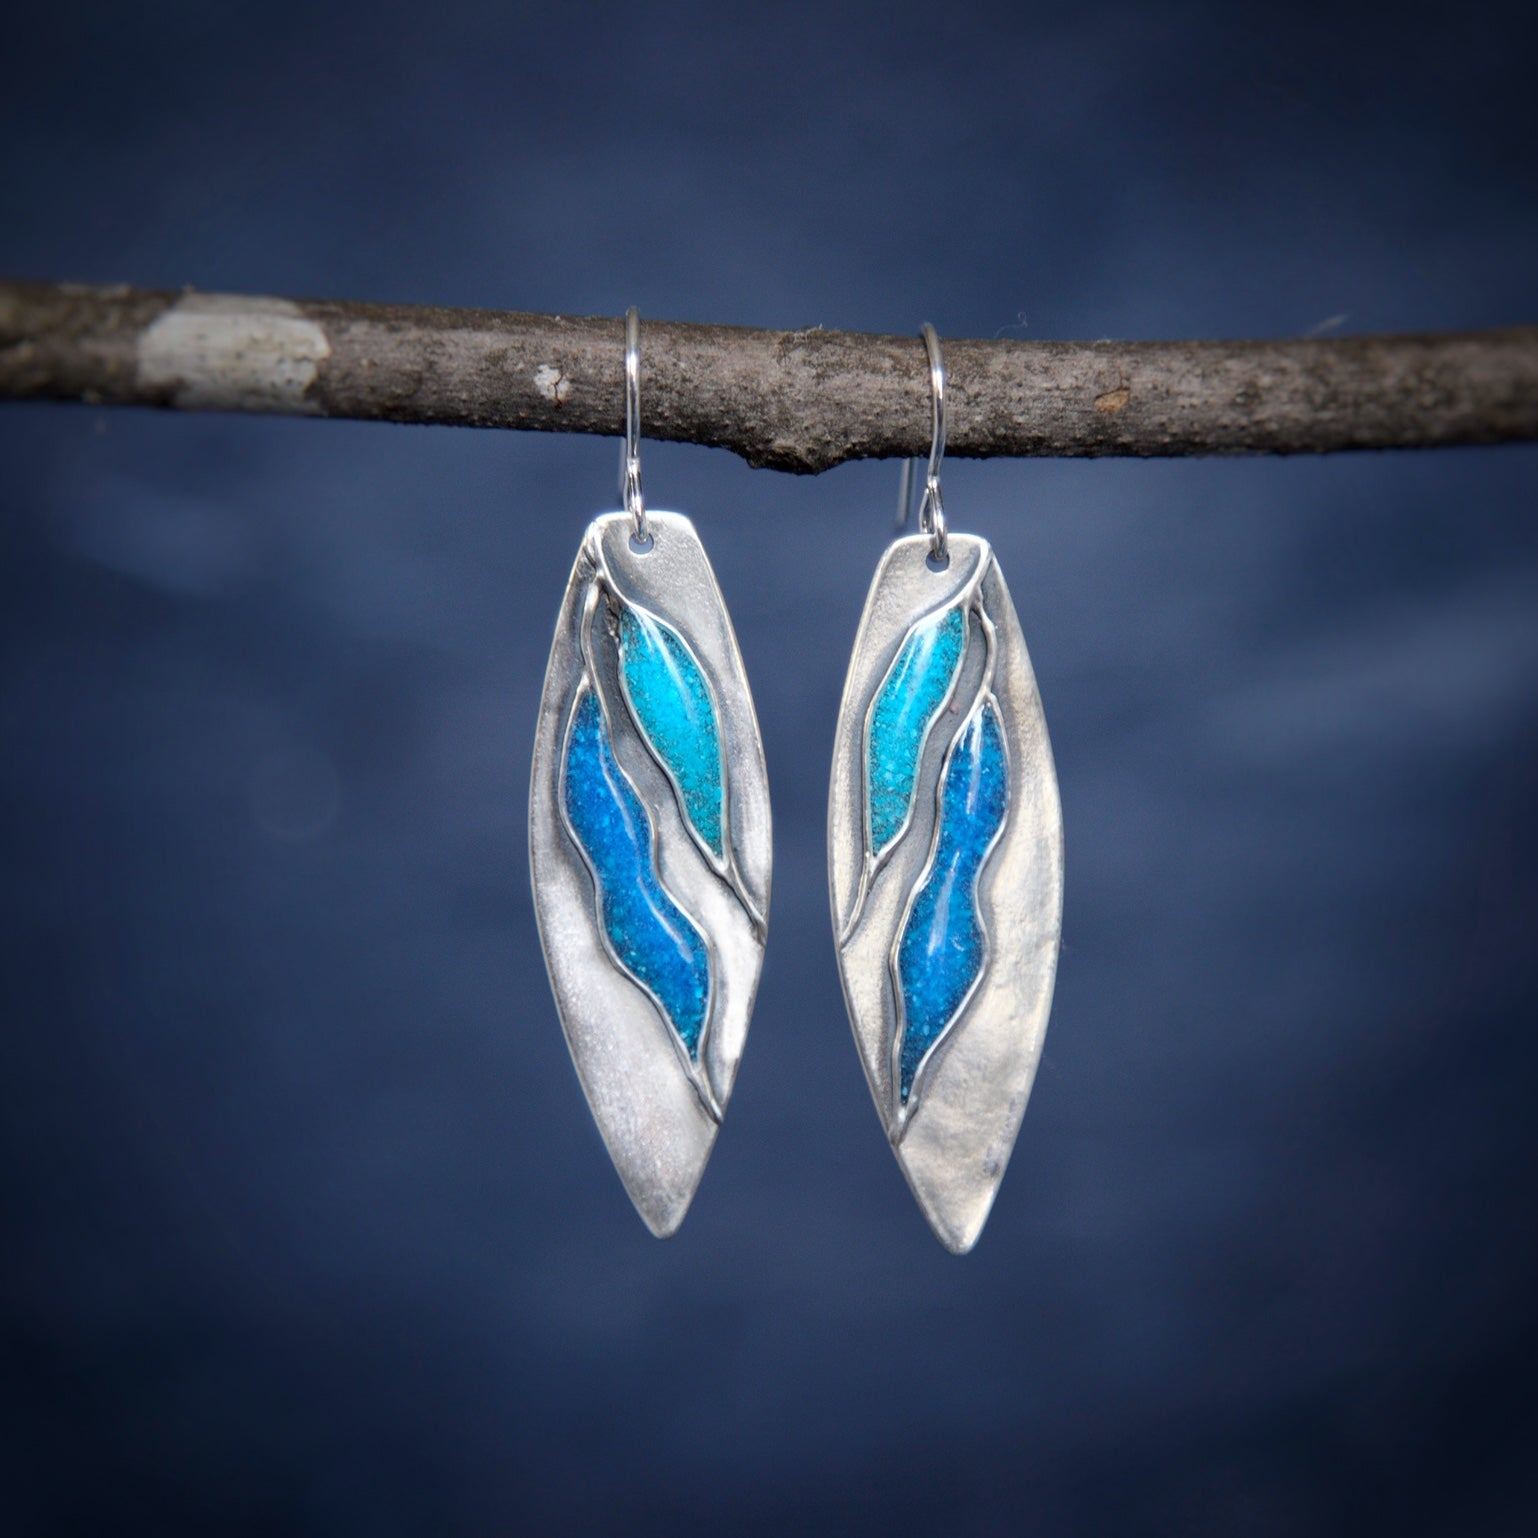 Gentle Current Earrings